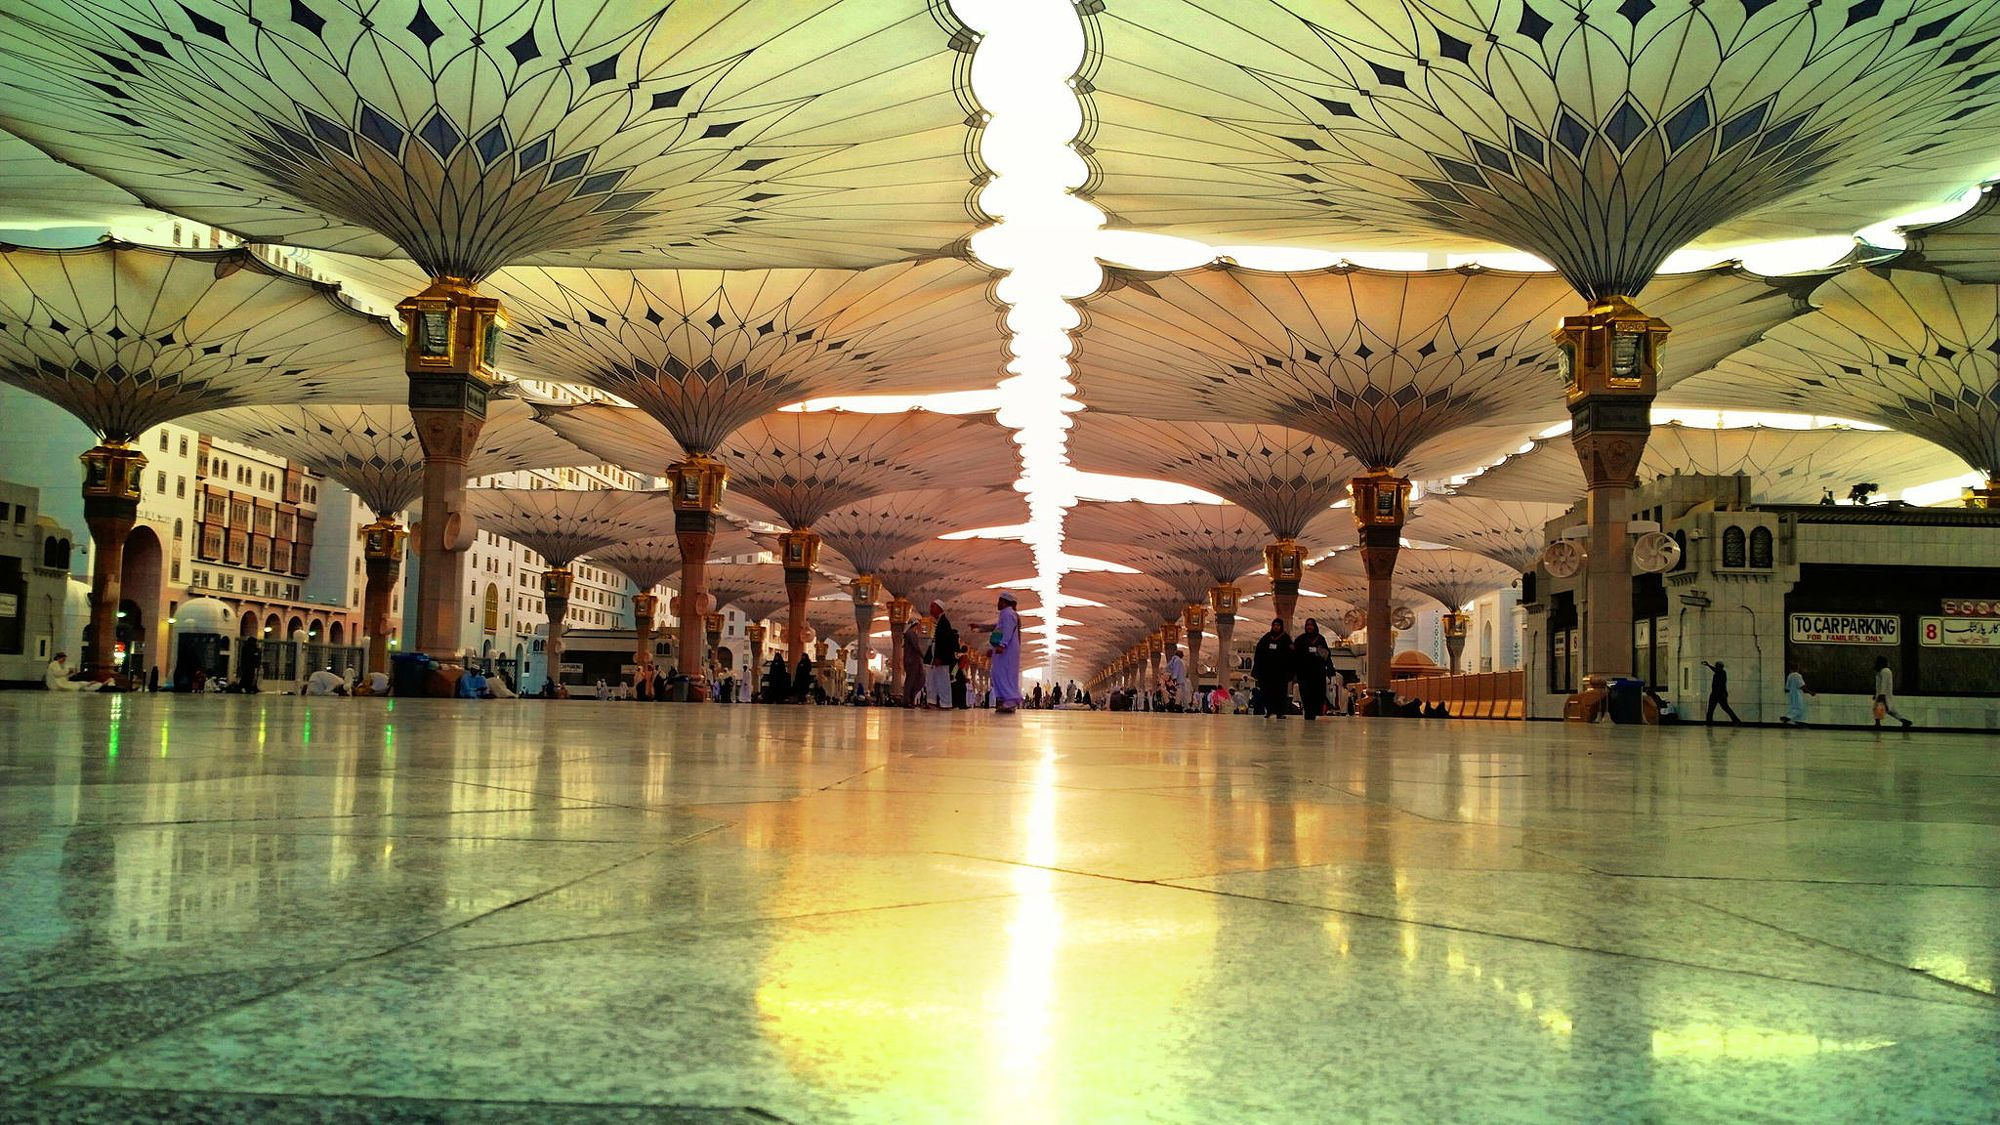 Beautiful view during sunrise in Madinah.